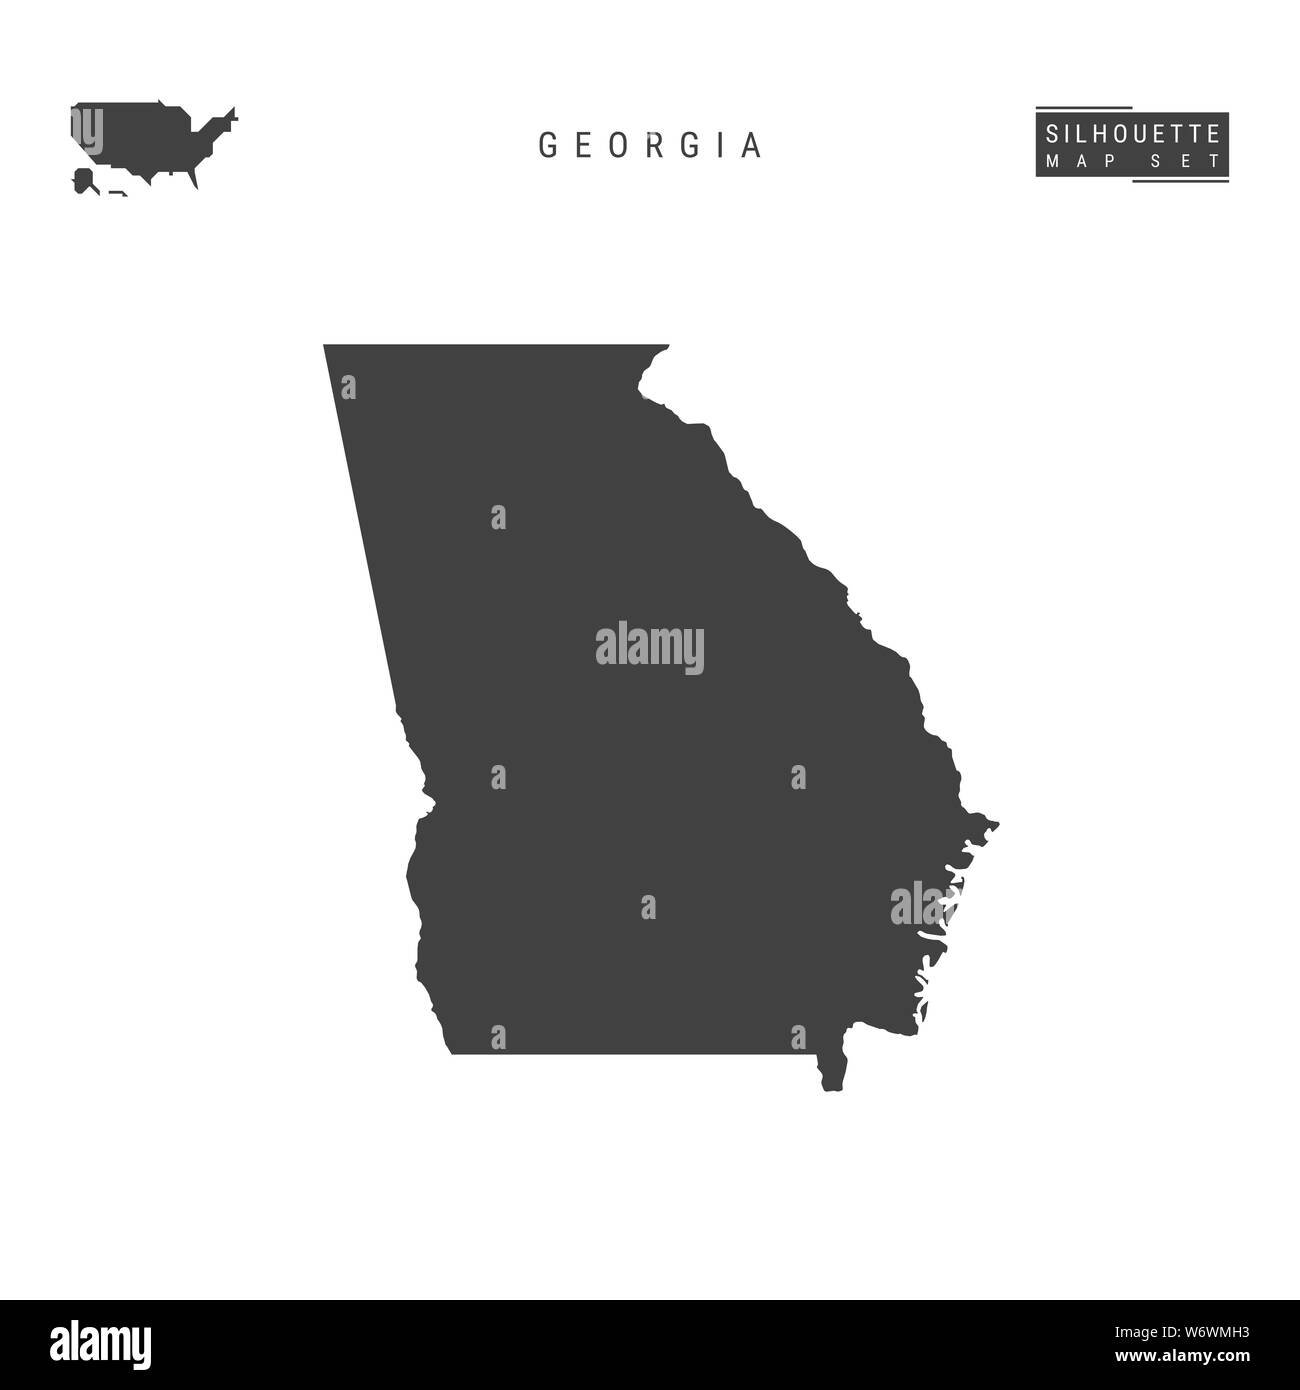 Georgia US State Blank Map Isolated on White Background ... on georgia map of africa, georgia state of america, savannah georgia map, georgia flag, georgia russia map, georgia on map, georgia travel map, georgia capital map, georgia water map, georgia in united states, georgia map with cities, georgia population by county, georgia road map detailed, atlanta georgia state map, georgia world map, baxley georgia map, georgia country, macon georgia map, georgia map atlanta ga, georgia time,